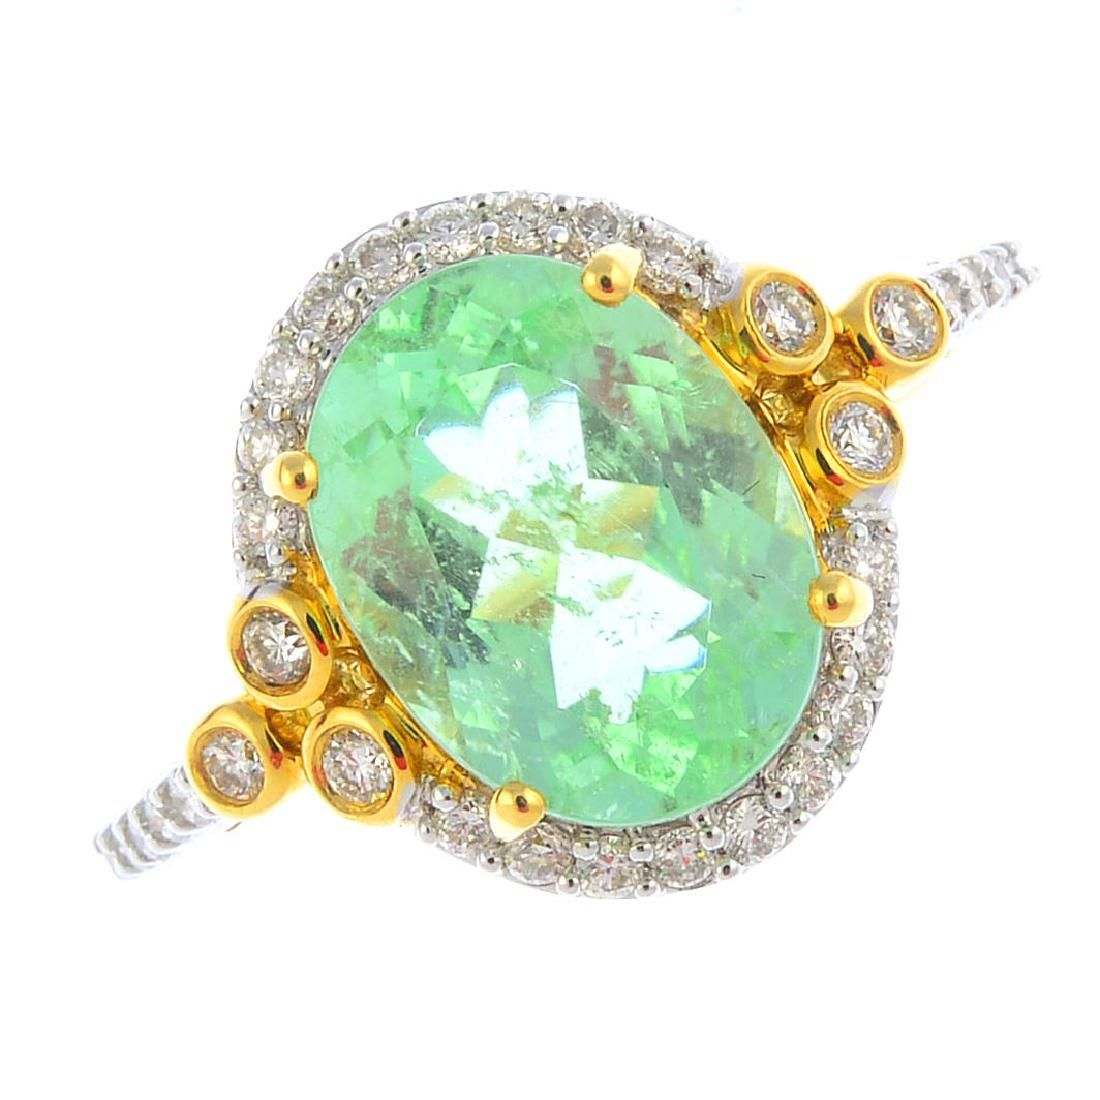 An 18ct gold tourmaline and diamond cluster ring. The